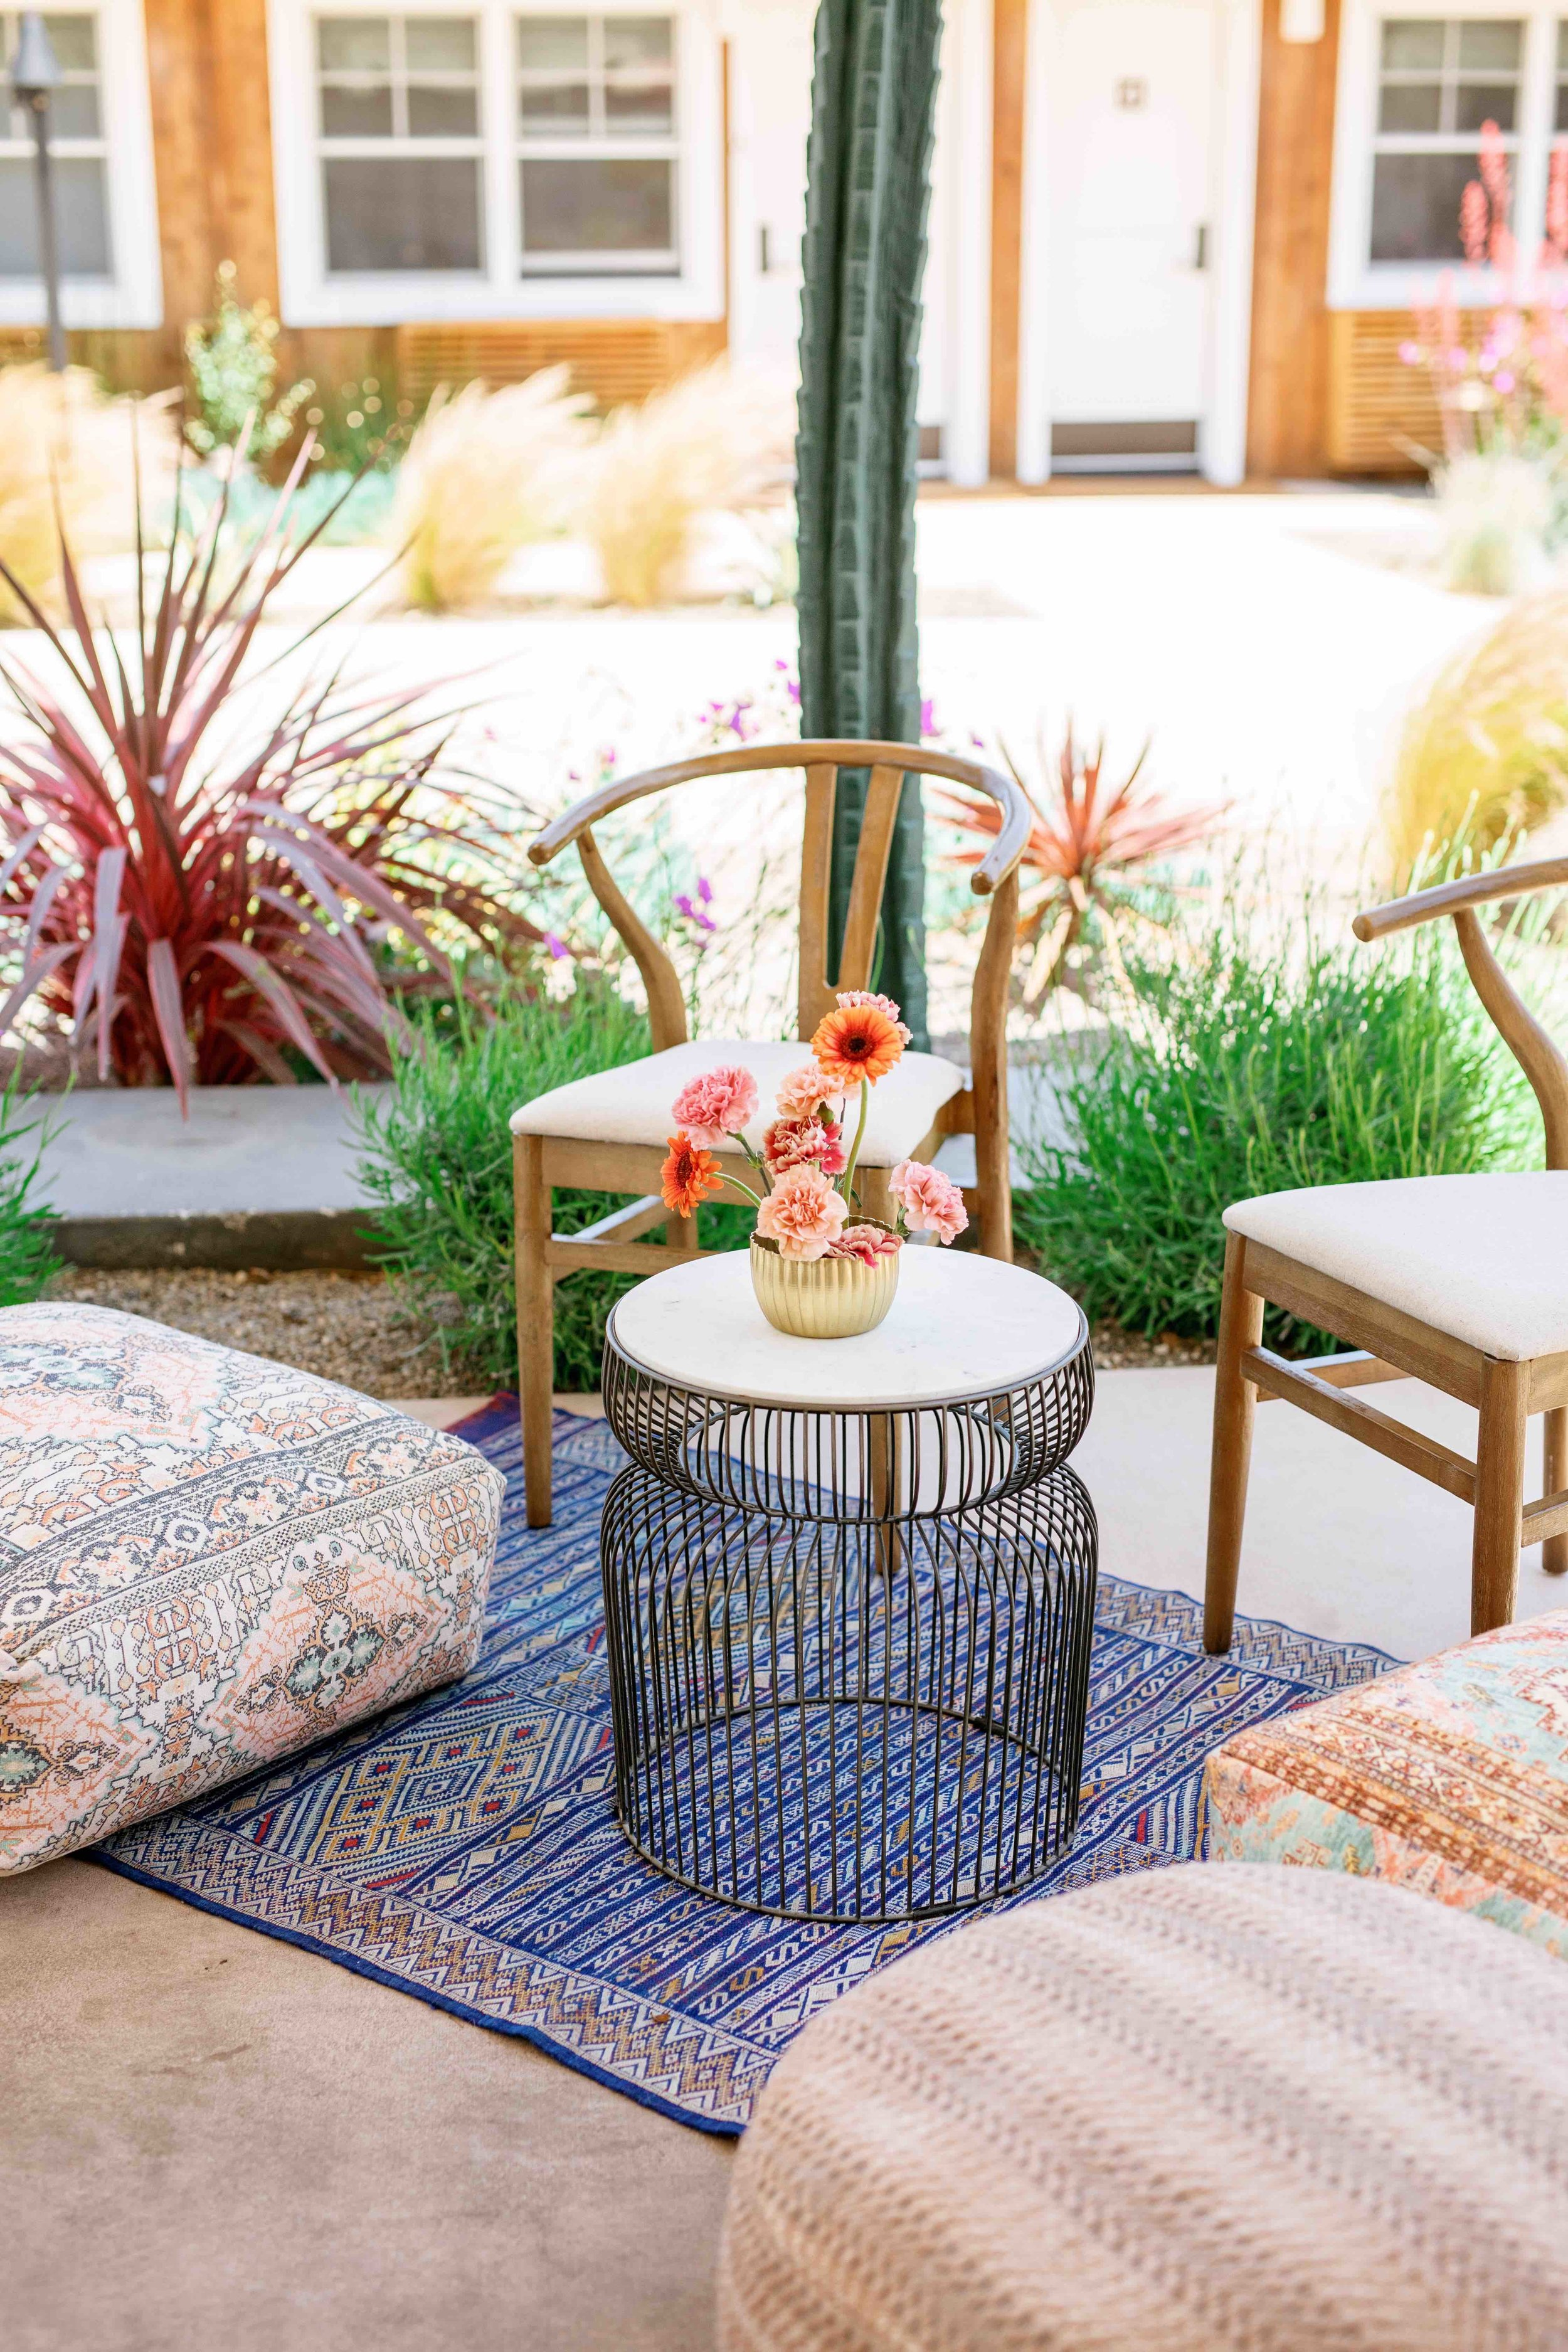 Anna Delores Photography_Skyview Los Alamos_Amazing Days Events_05.28.19-181.jpg